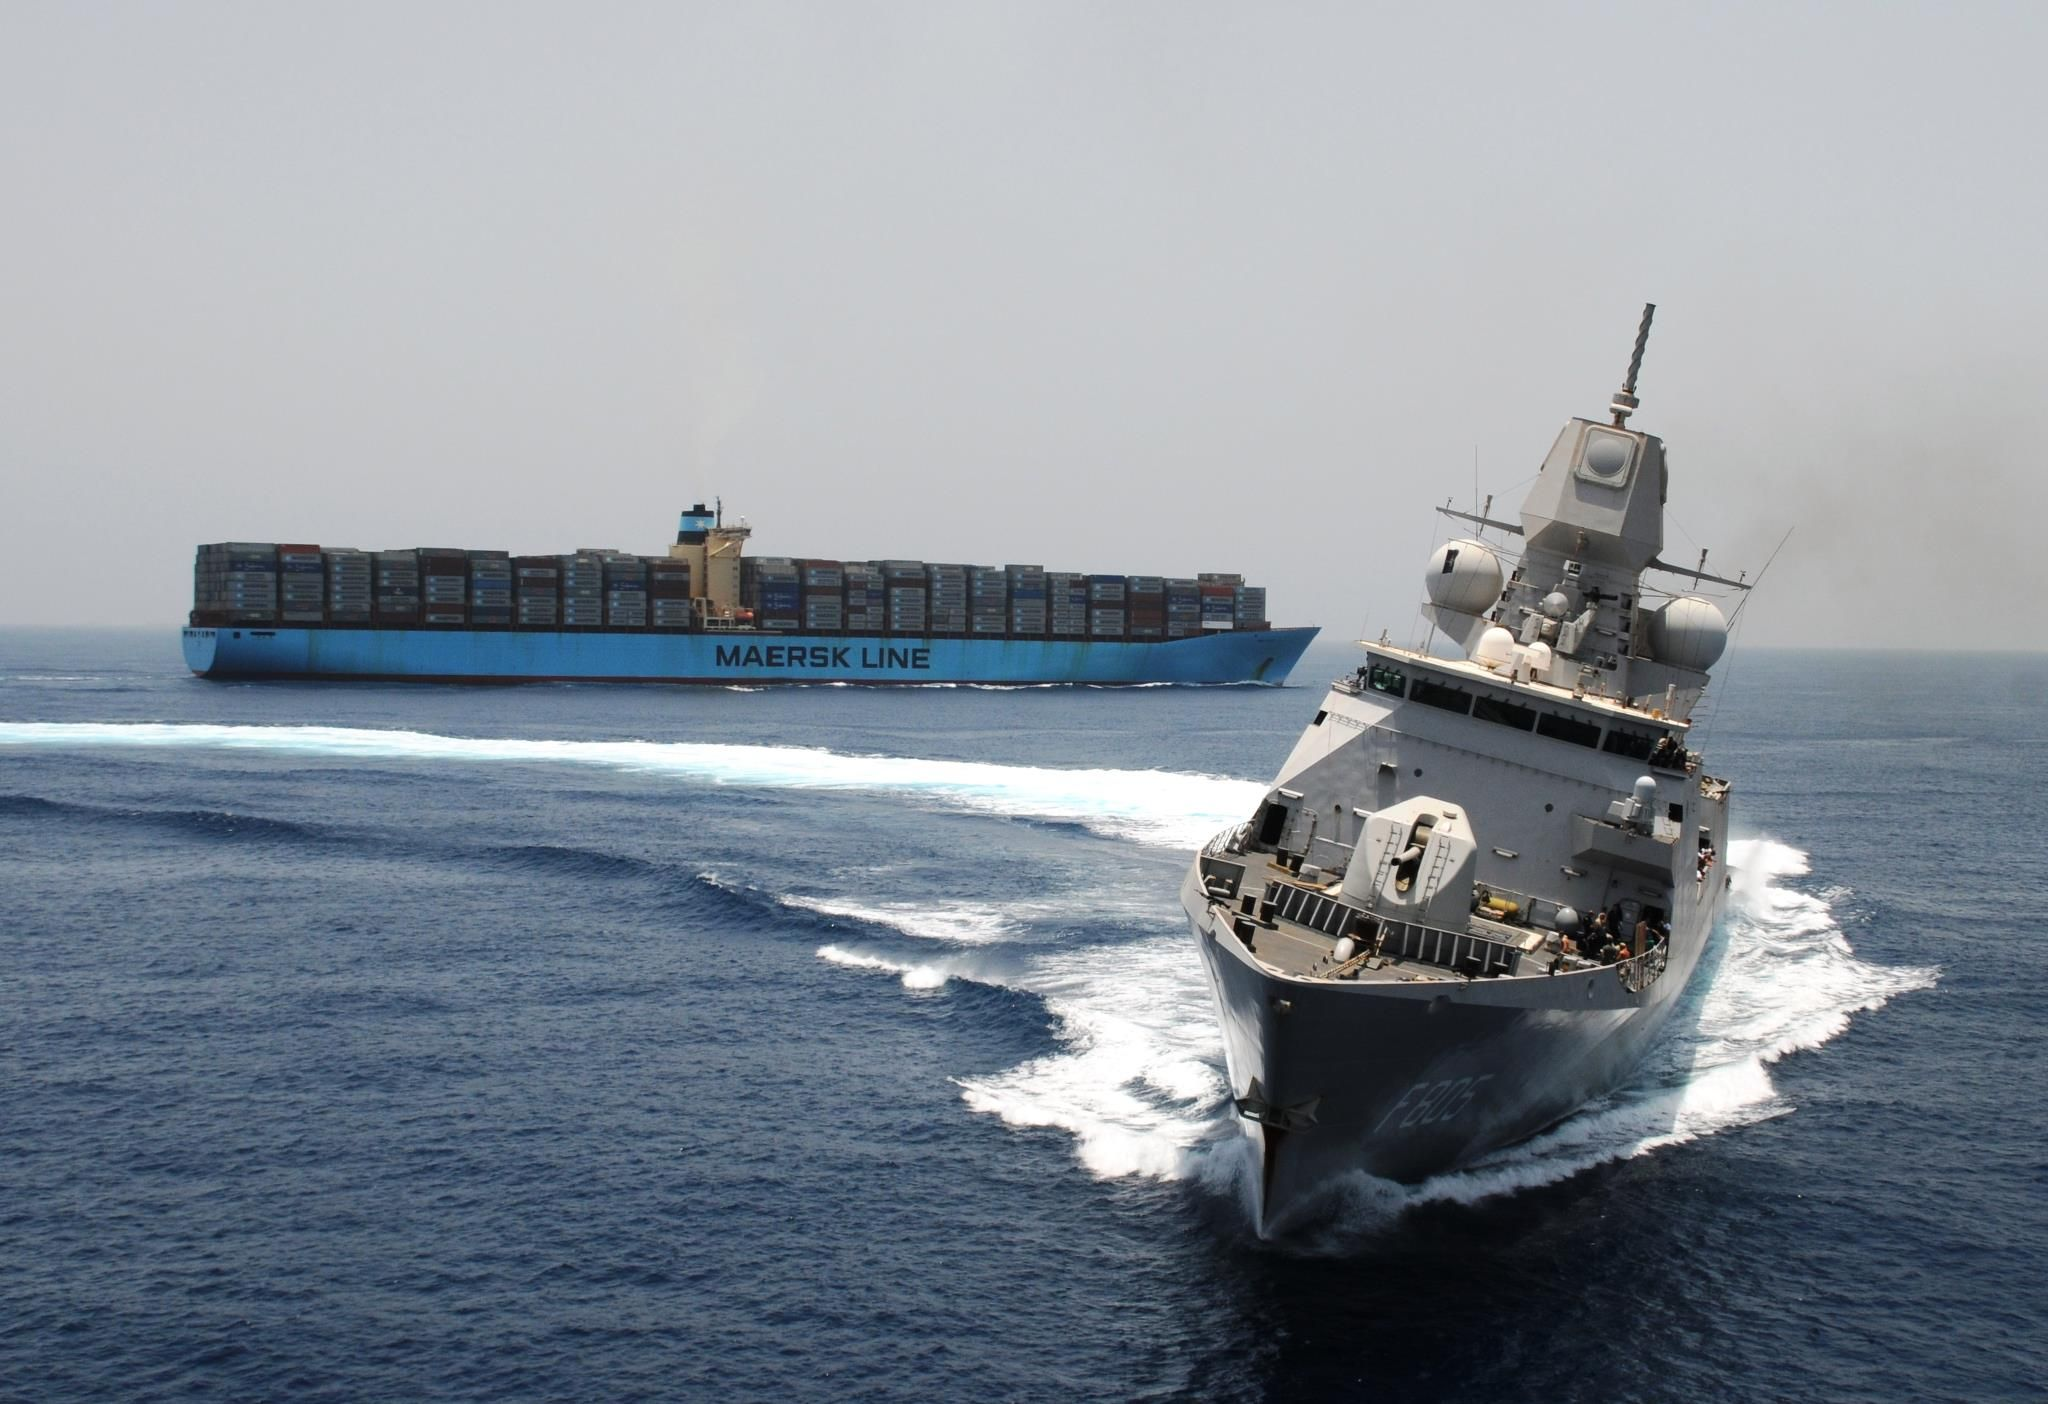 Maersk Line vessel and a naval ship in the Gulf of Aden, off the coast of Somalia.